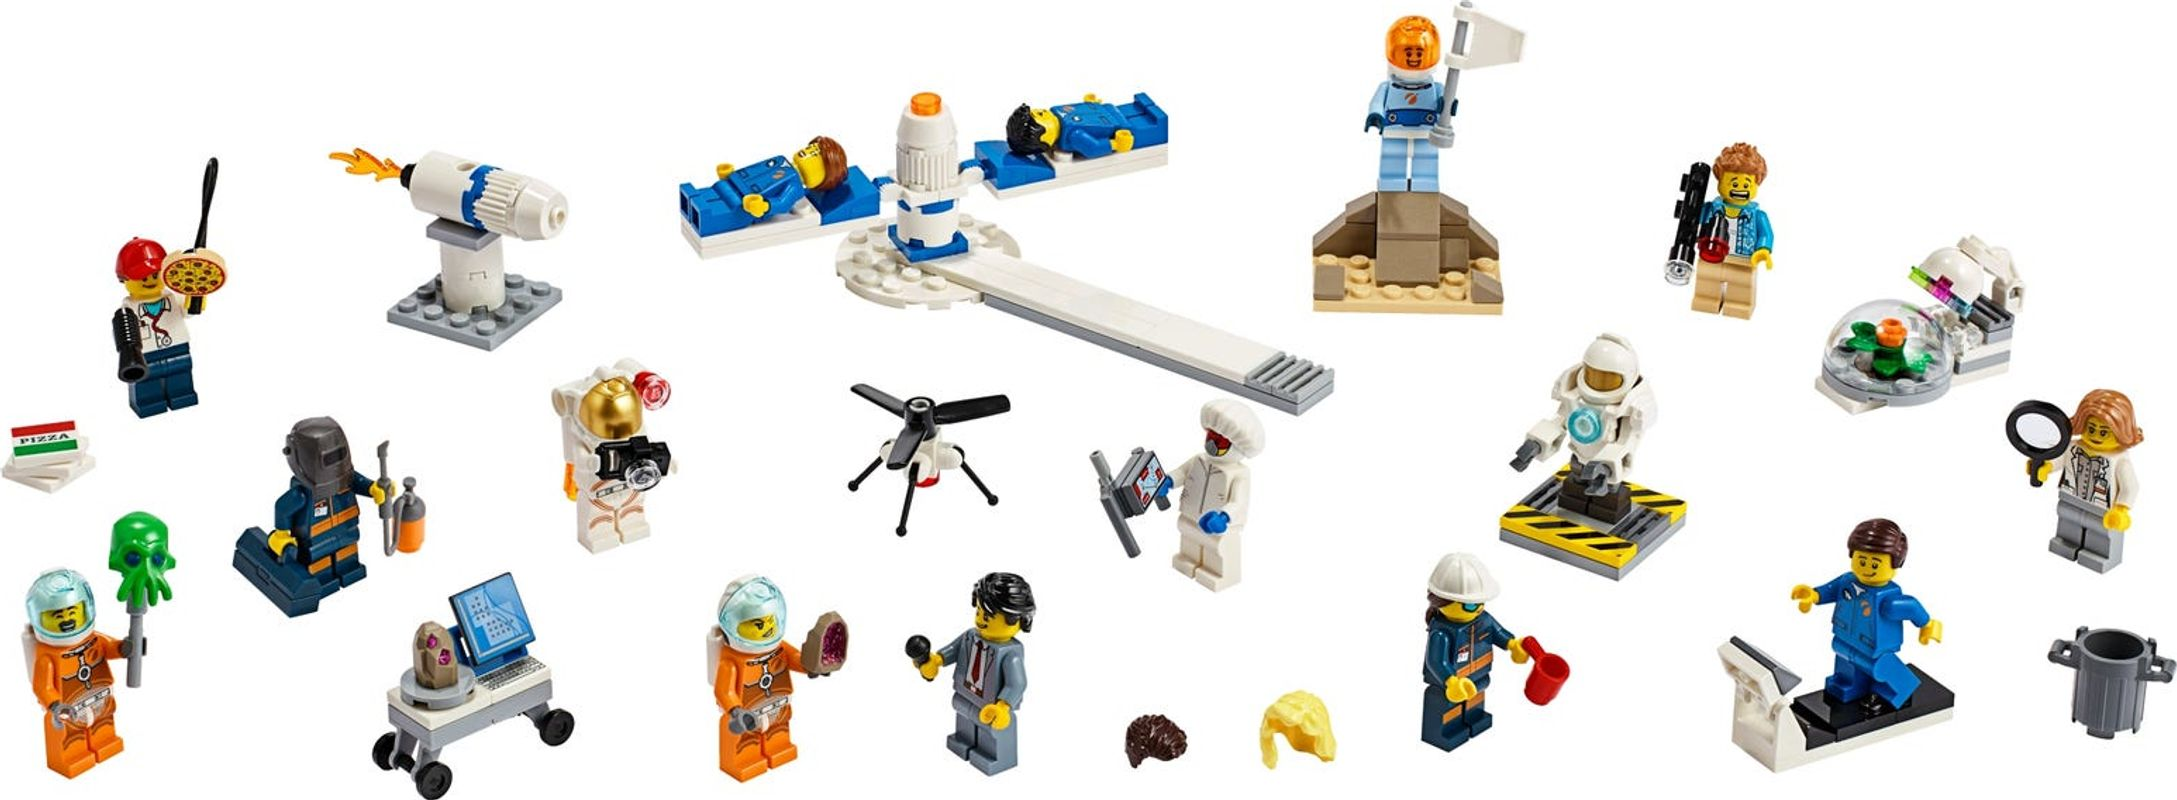 People Pack - Space Research and Development components